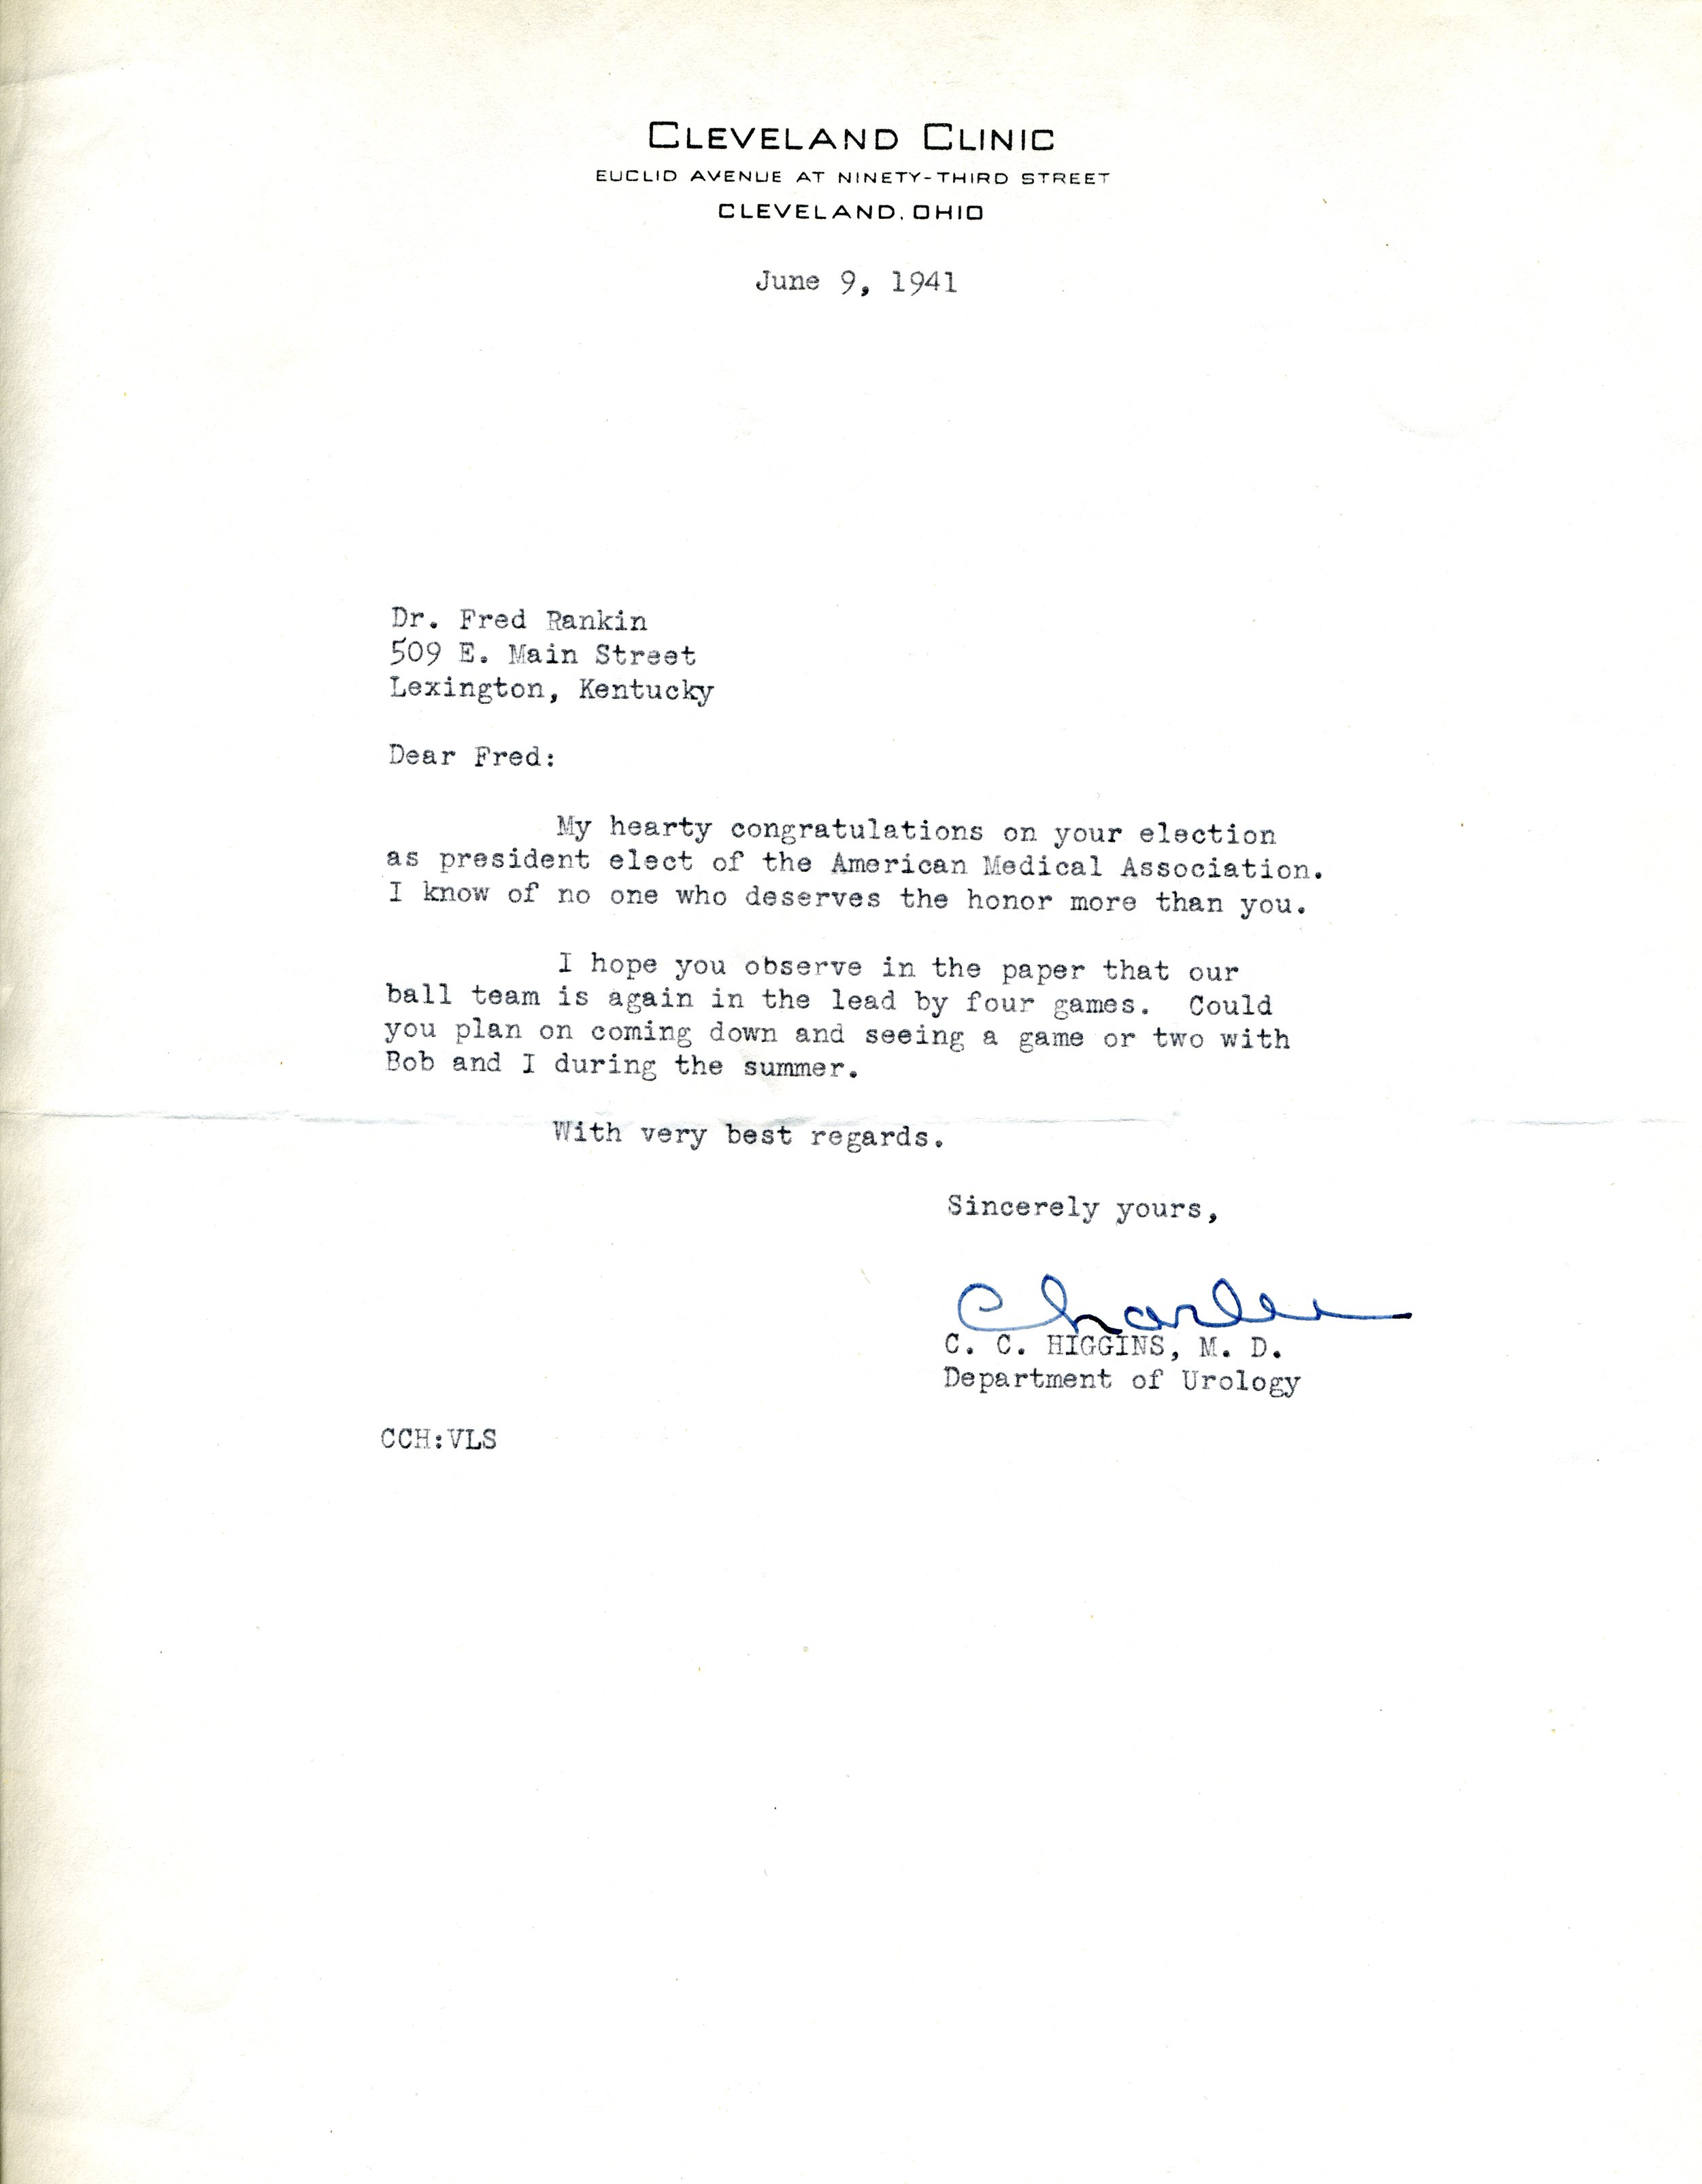 Letter from C  C  (Charles) Higgins, M D , Department of